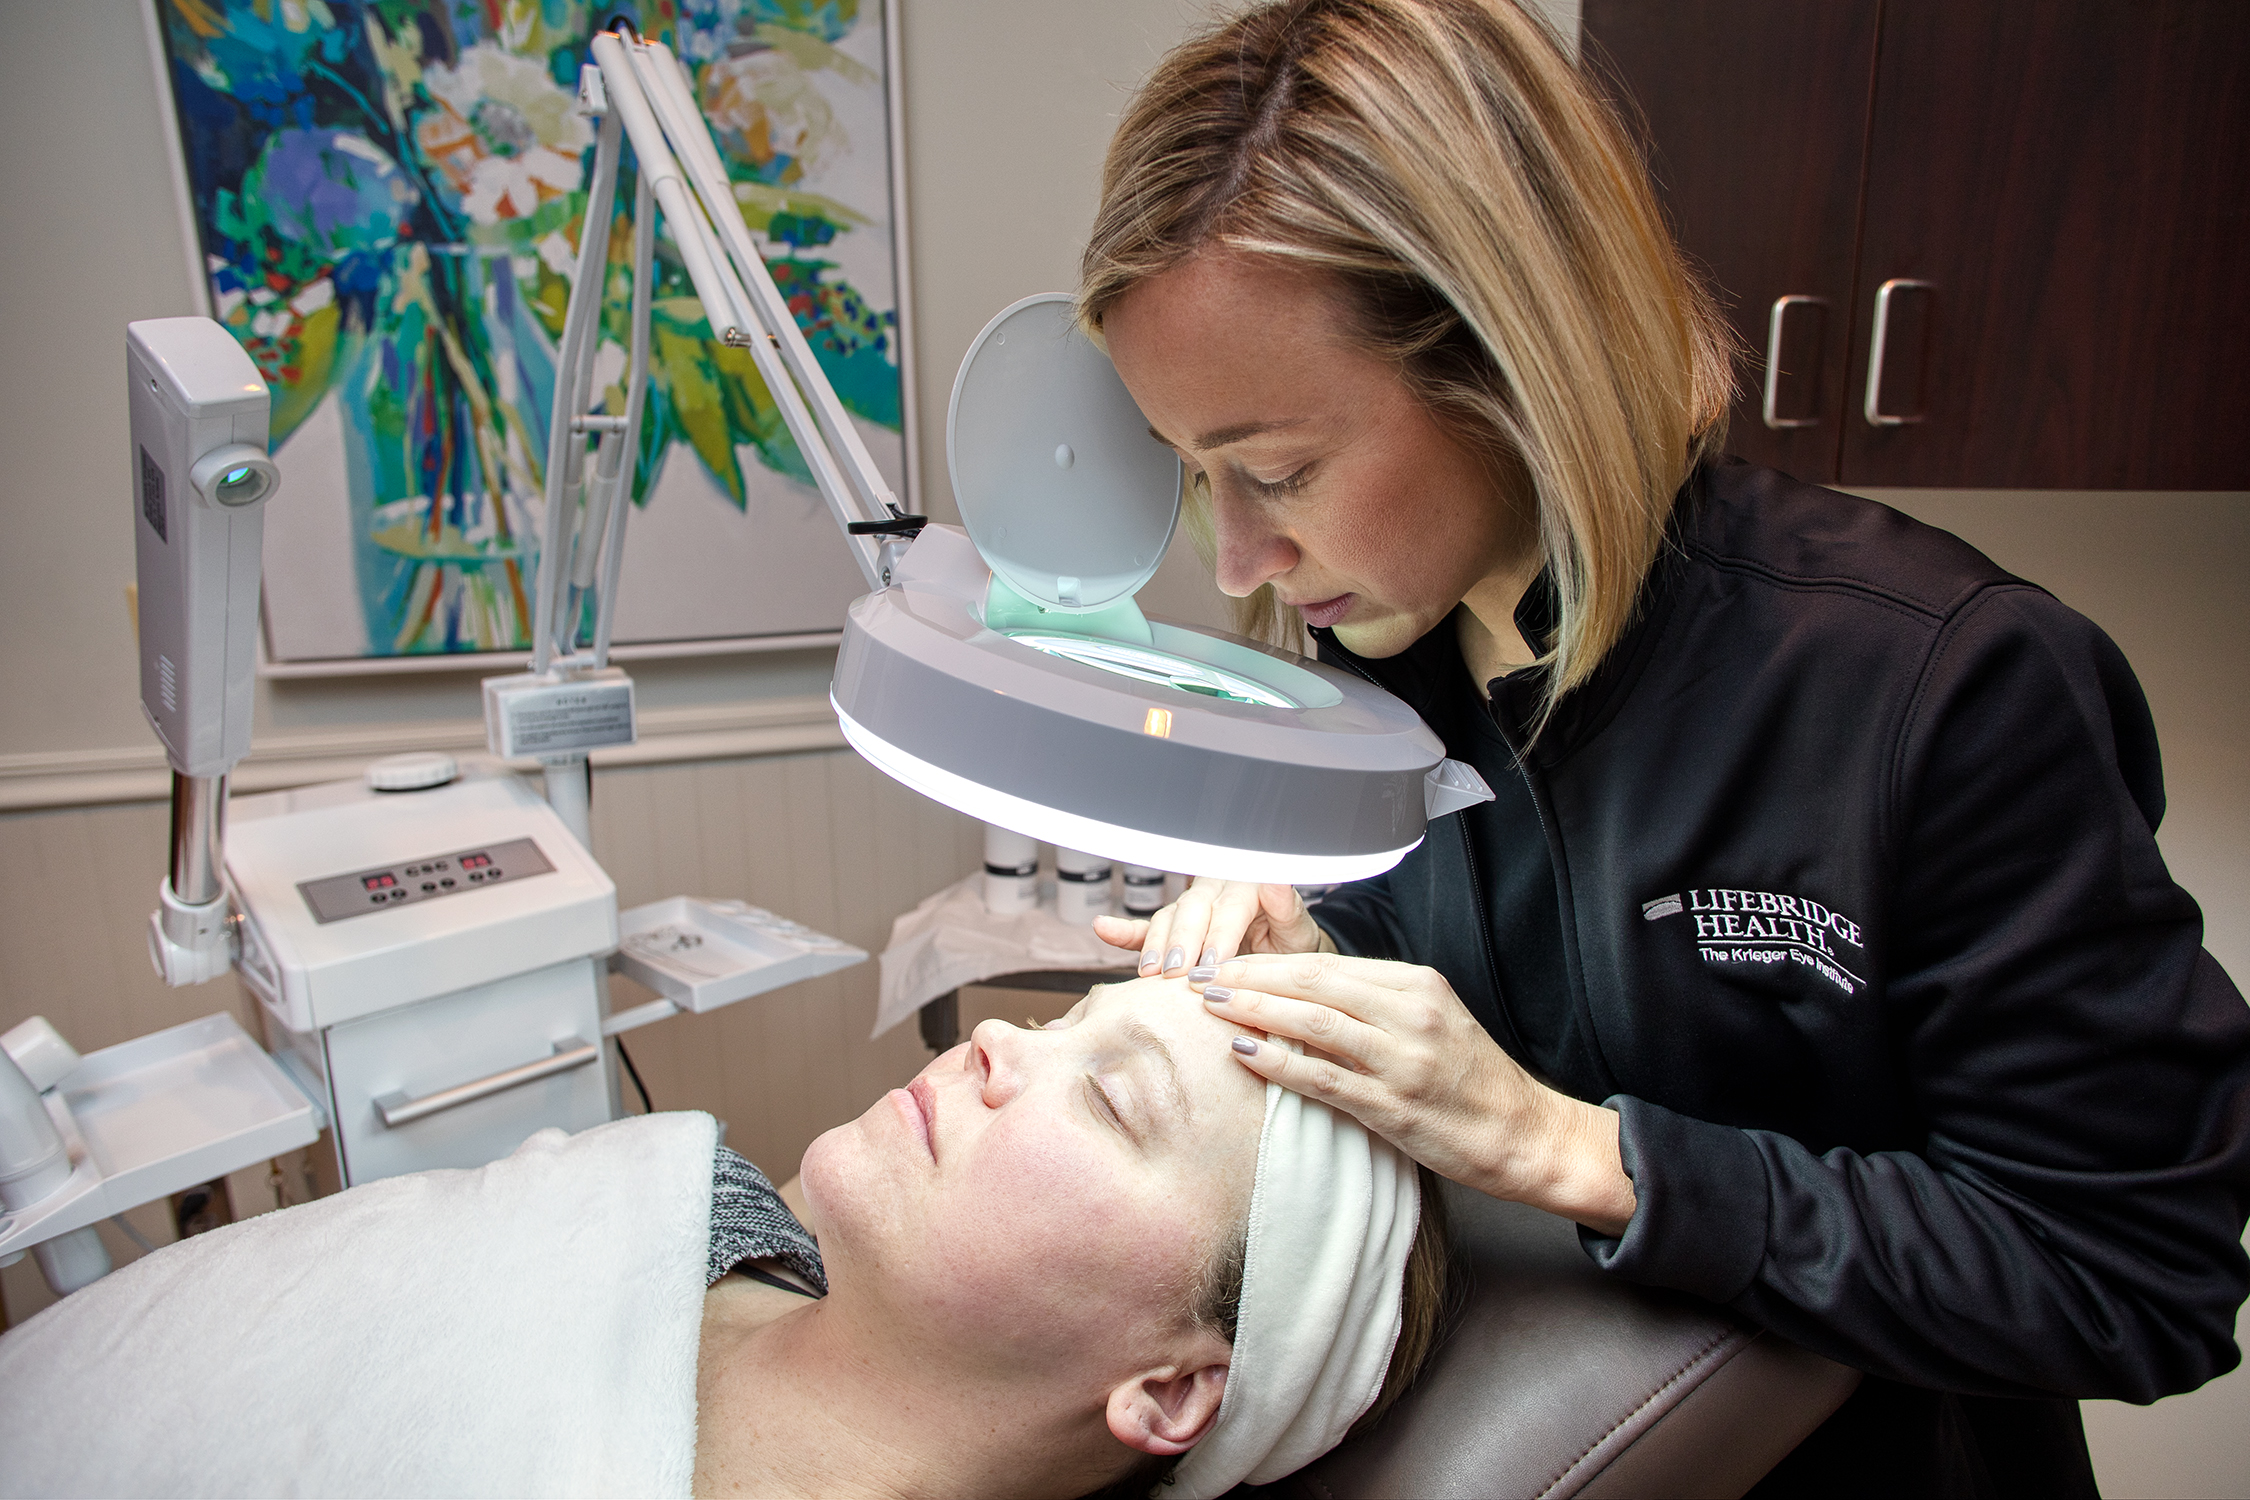 Treatments at Medspa